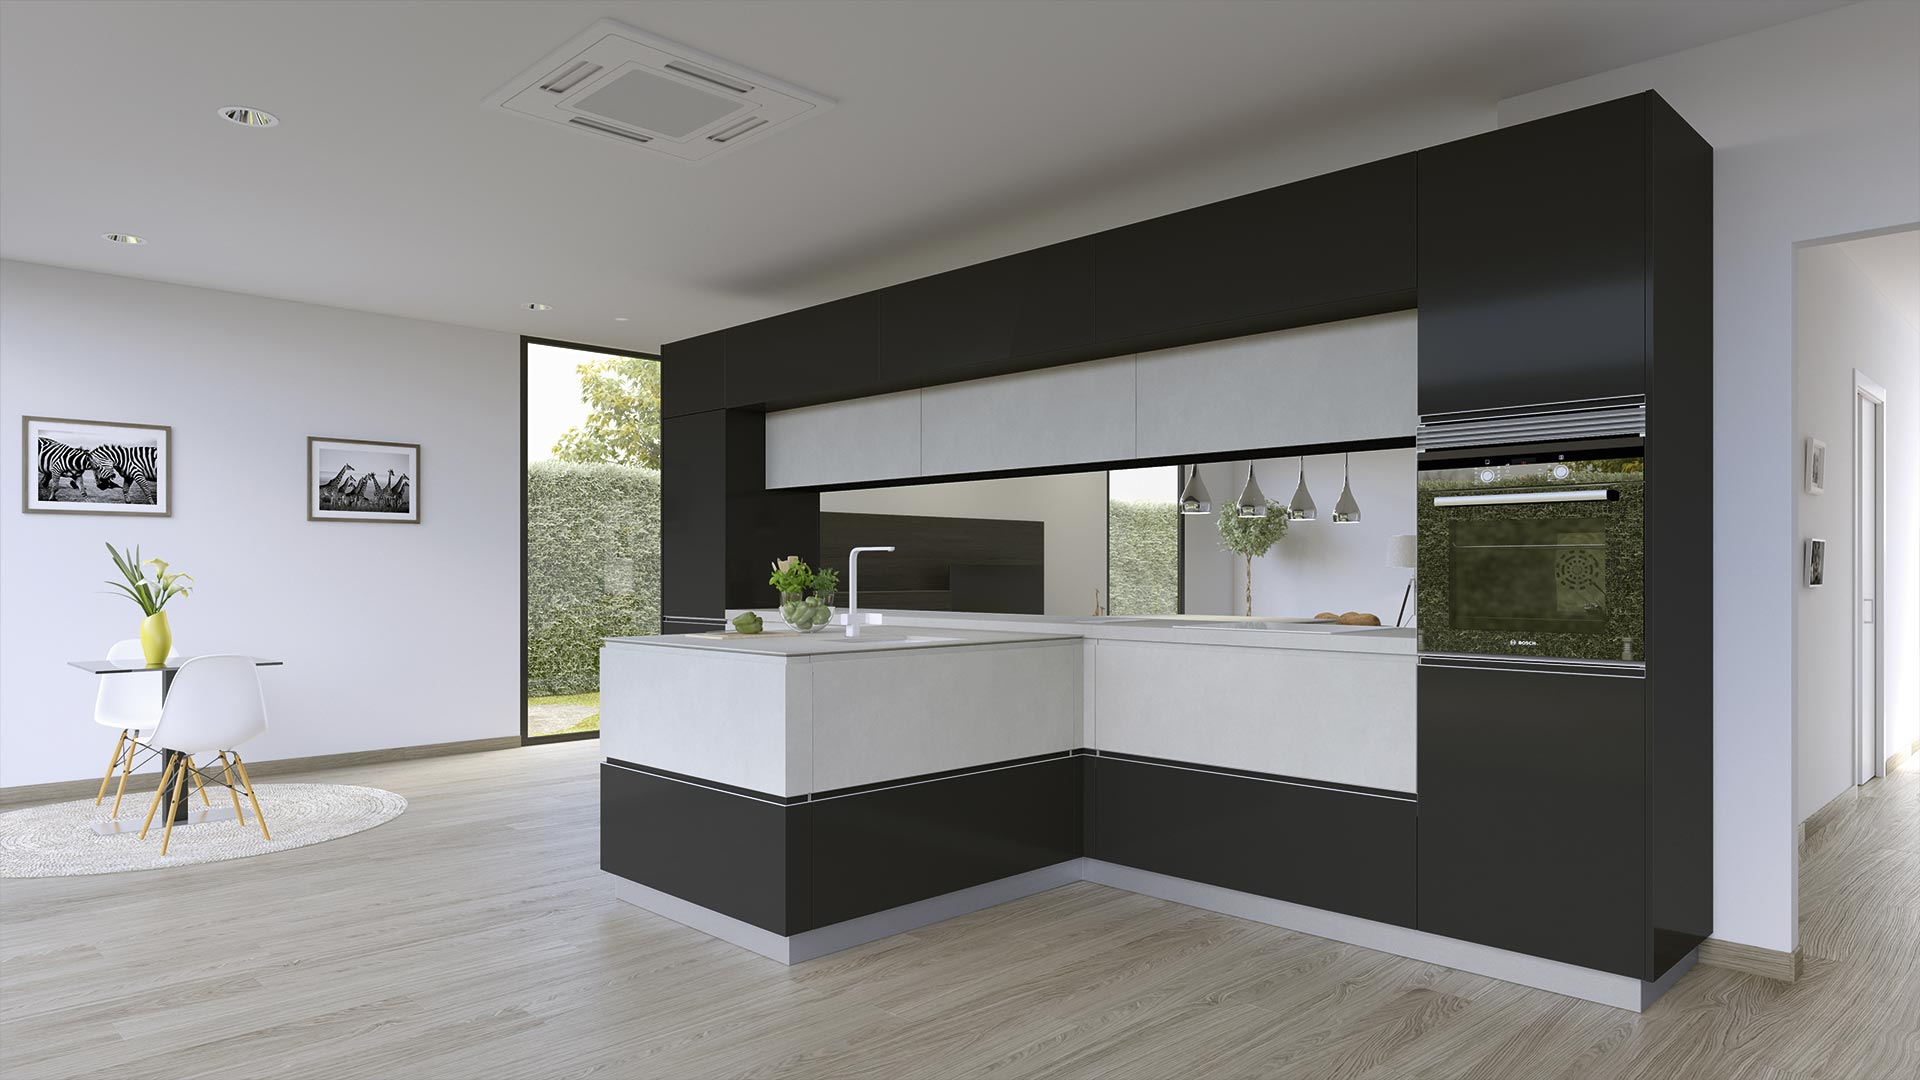 Of Kitchen Furniture We Show You Our Exclusive Designs Of Kitchen Furniture Senssia